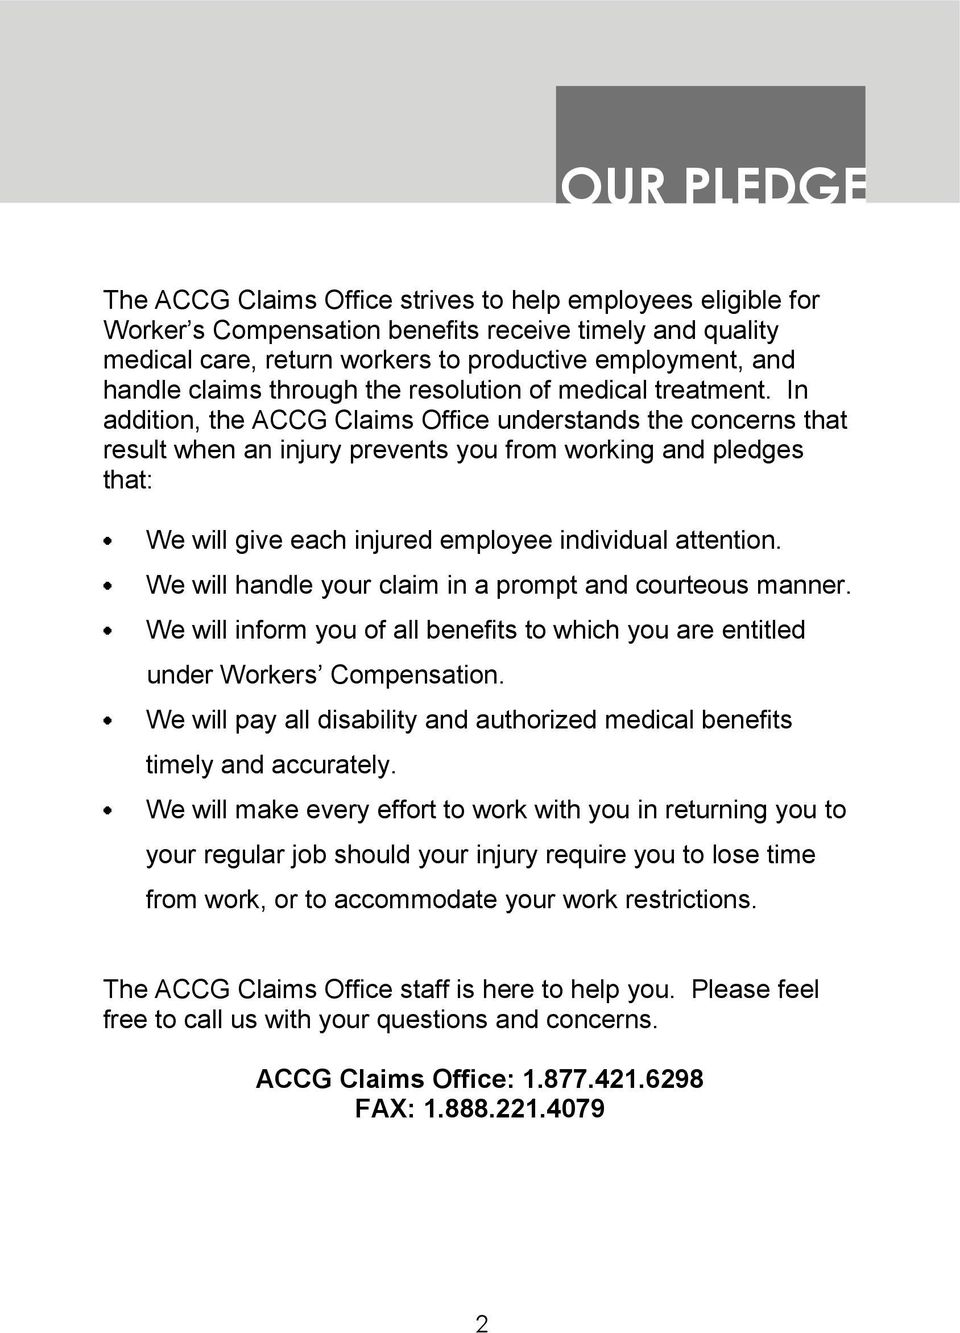 In addition, the ACCG Claims Office understands the concerns that result when an injury prevents you from working and pledges that: We will give each injured employee individual attention.